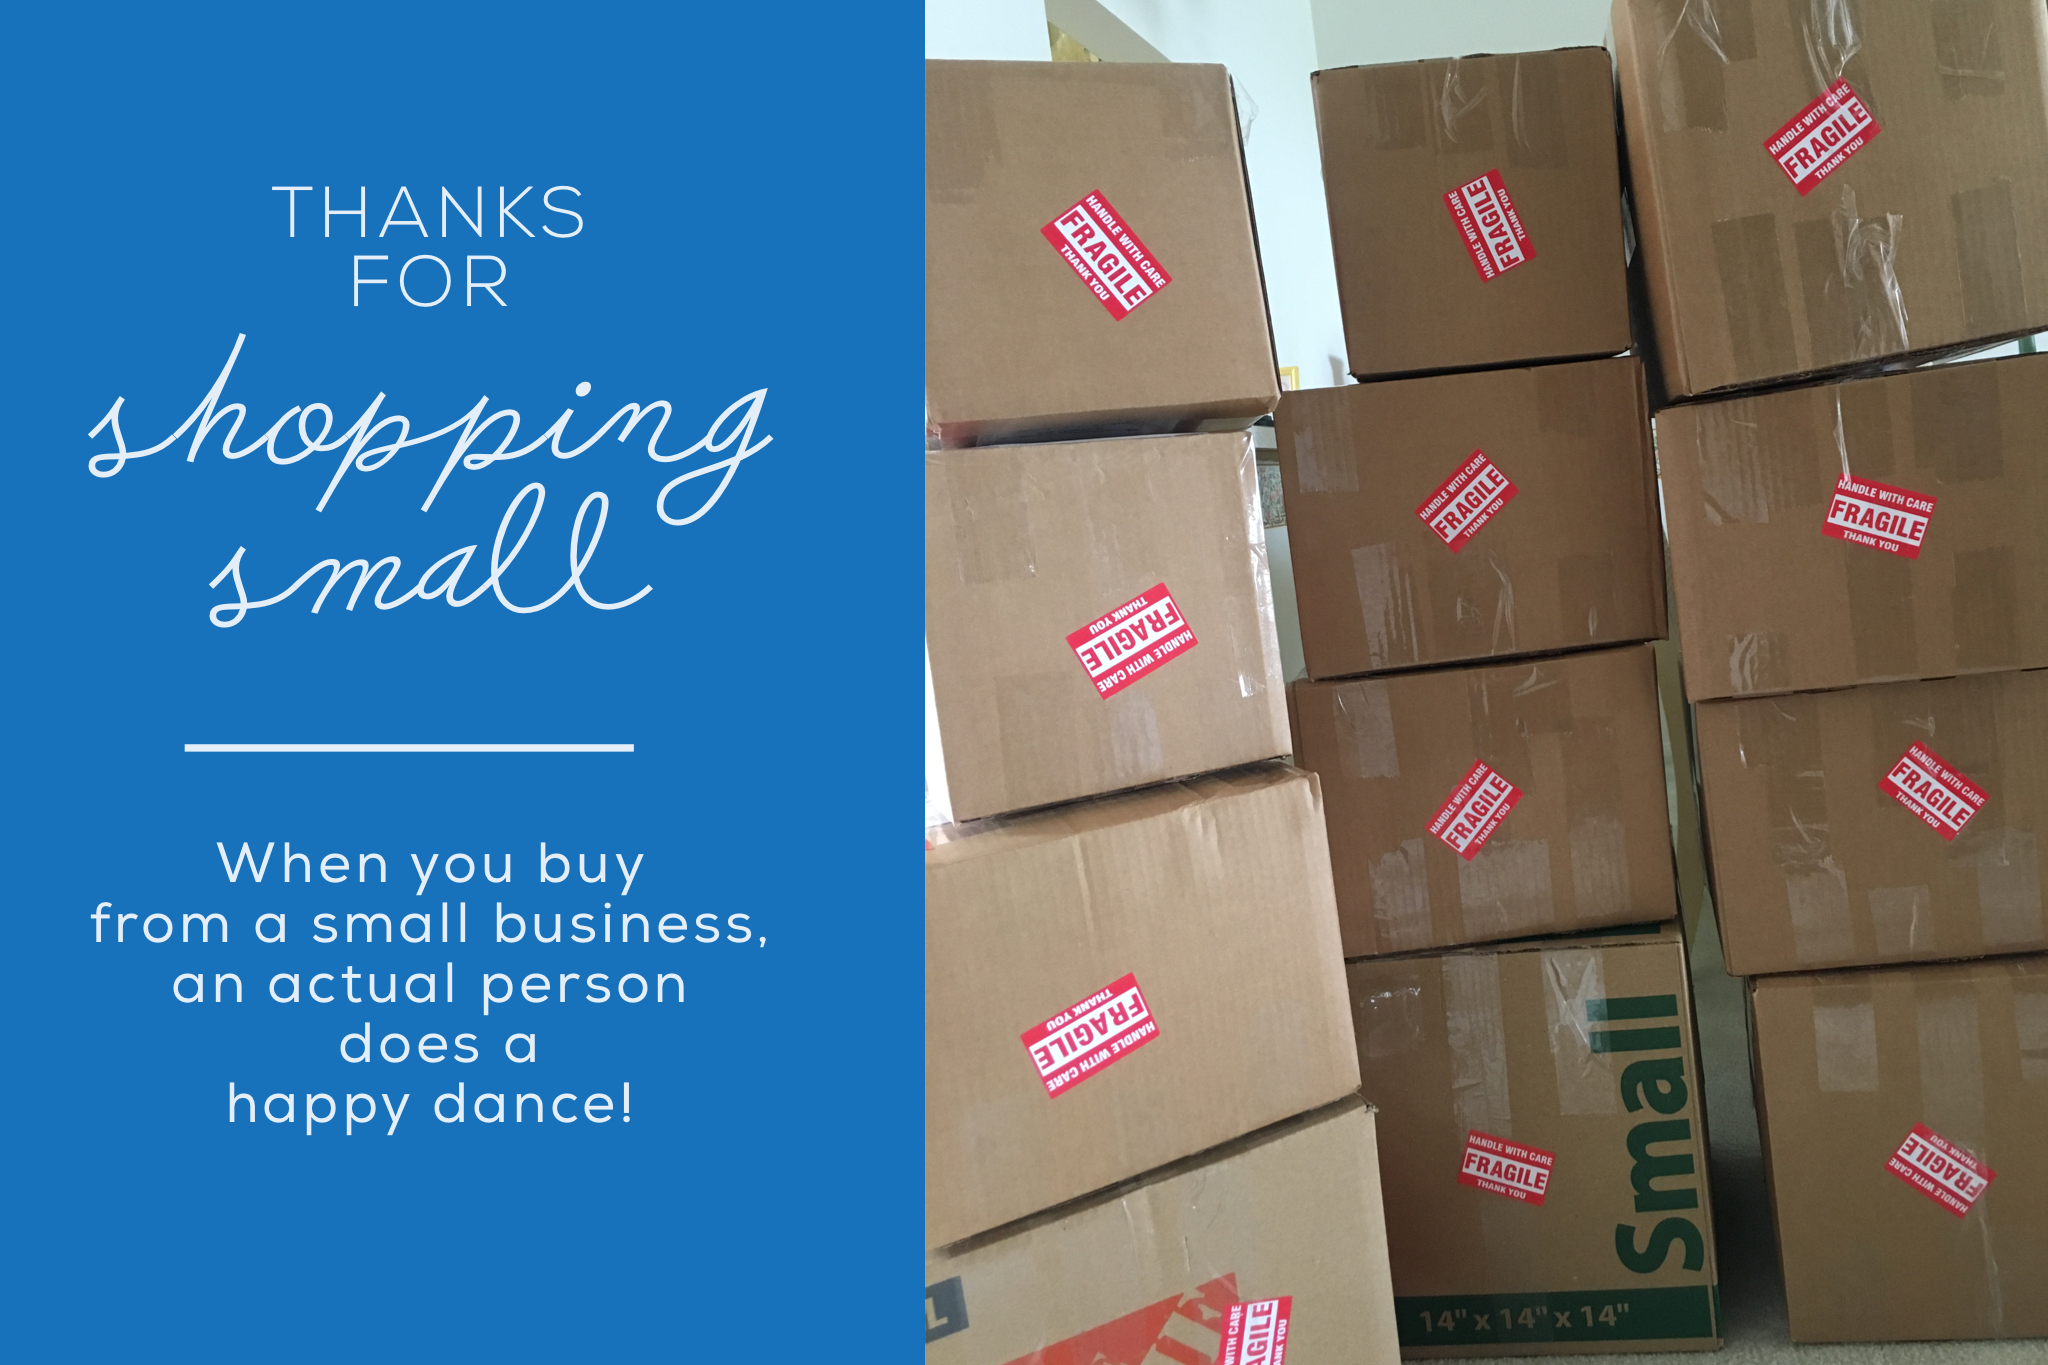 Shop Update: USPS Shipping Rate Changes Effective 6/23/19